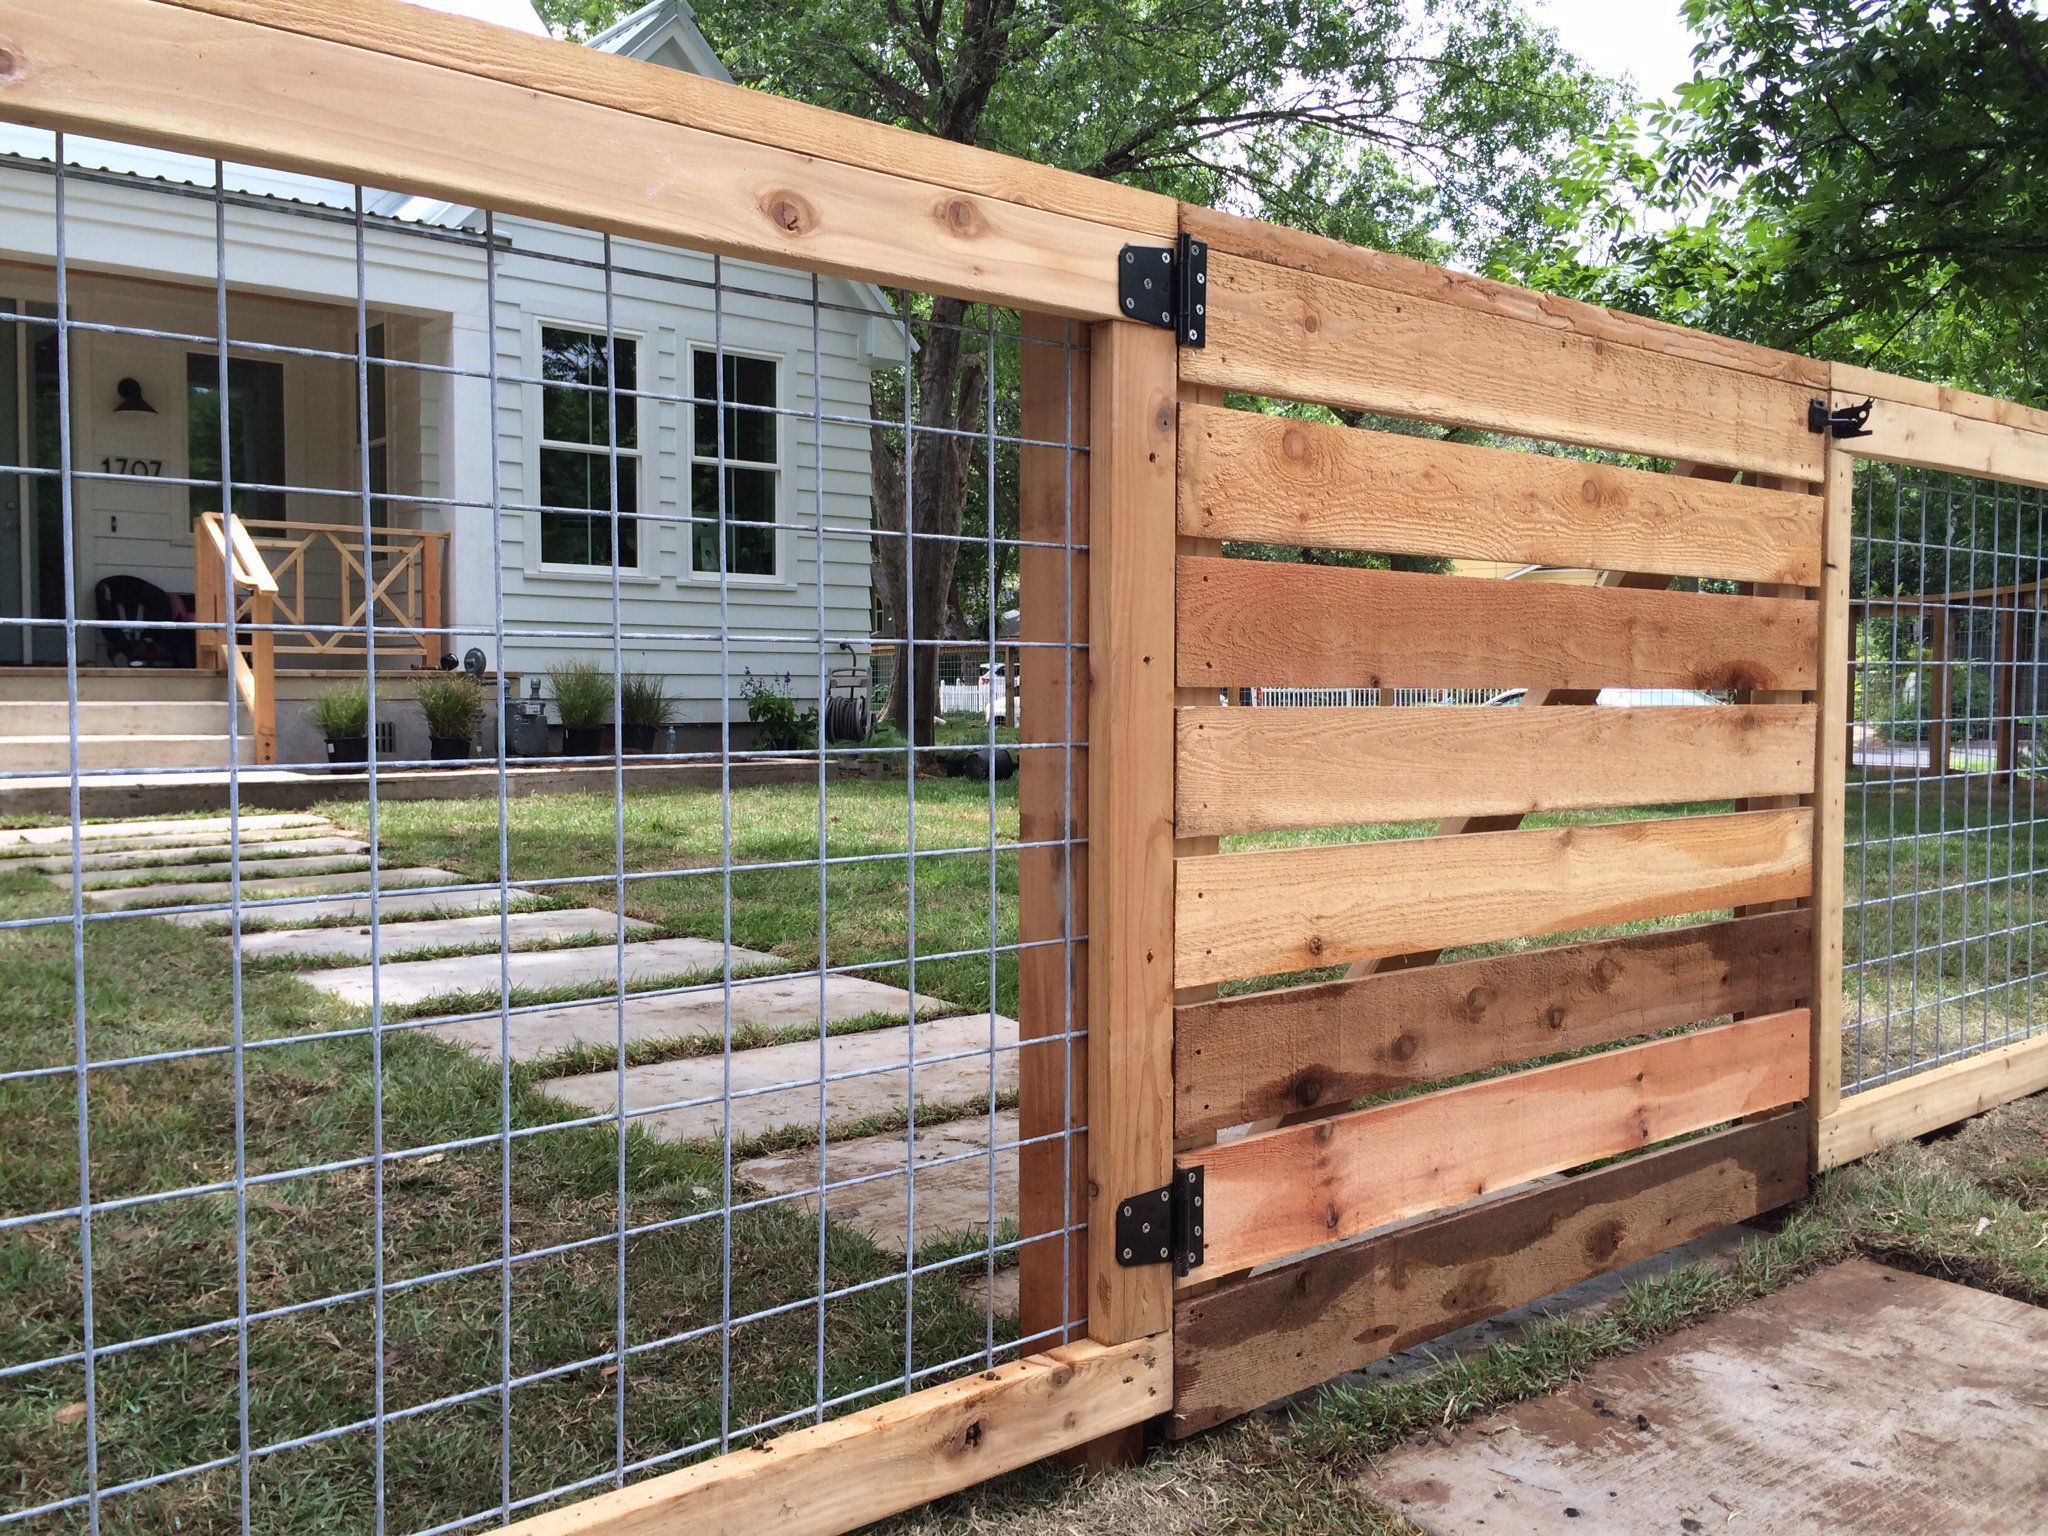 17 Awesome Hog Wire Fence Design Ideas For Your Backyard in 2018 ...